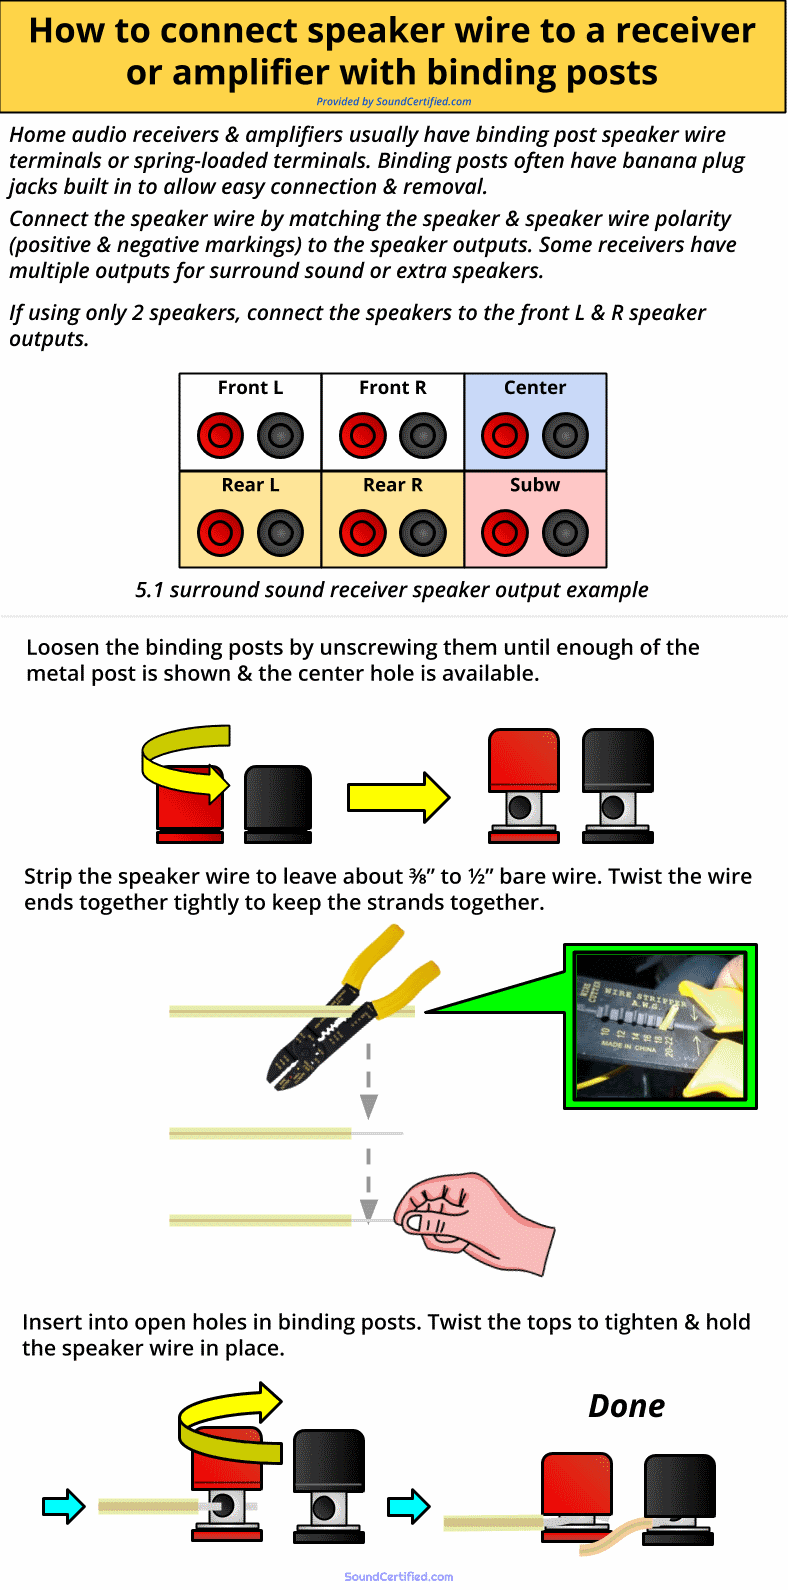 How to connect speaker wire to receiver or home amp with binding posts diagram